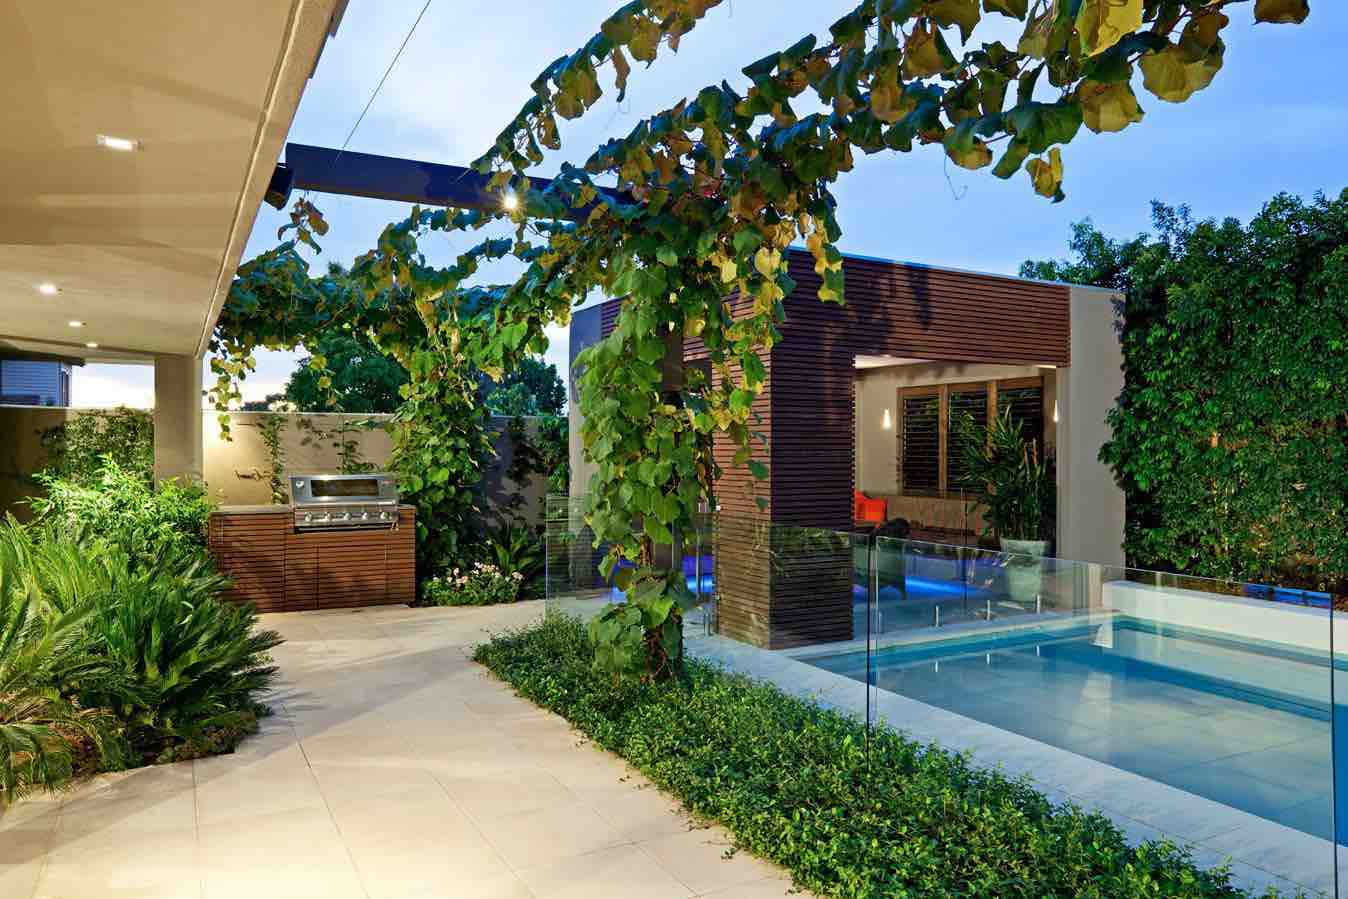 Best ideas about Small Backyard Design . Save or Pin 41 Backyard Design Ideas For Small Yards Now.